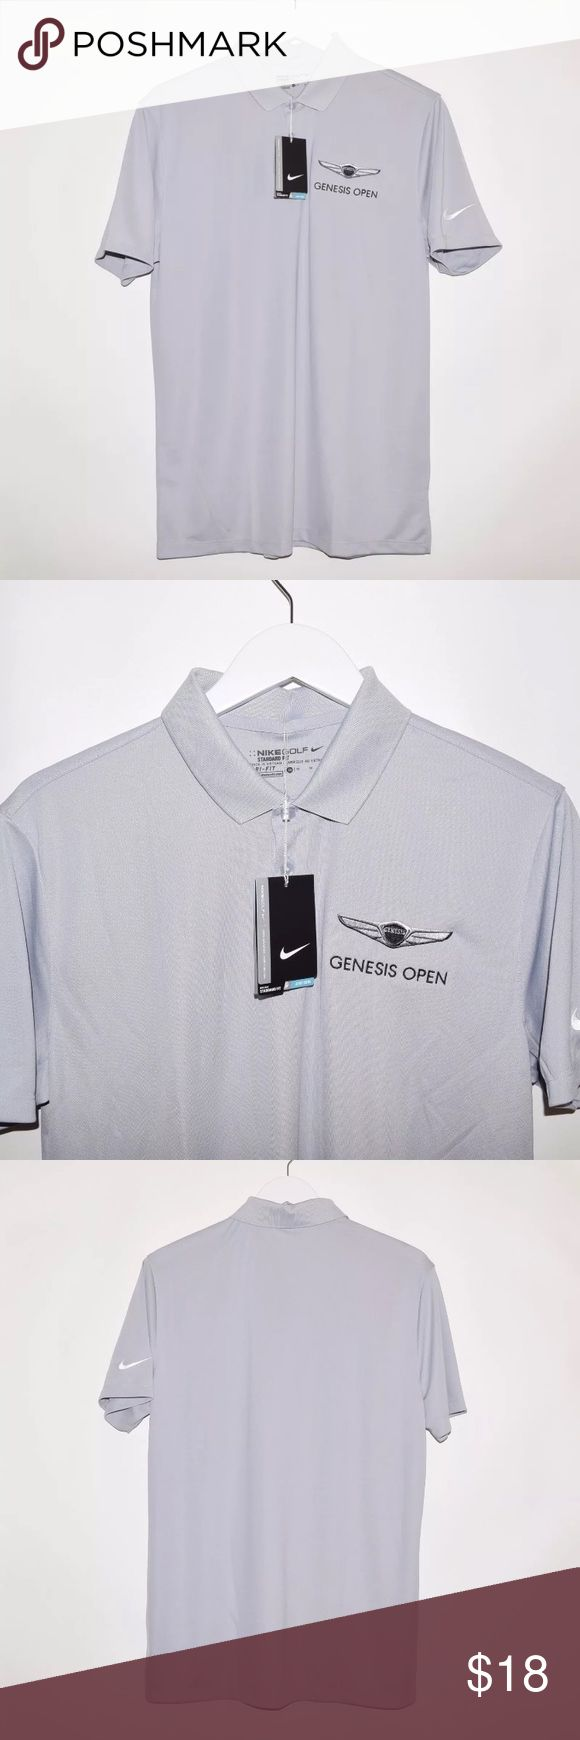 Nike Golf Standard Fit Dri-Fit Polo Shirt Brand: Nike Golf Item name: Men's Standard Fit Dri-Fit Polyester Polo Shirt w/ Genesis Open logo embroidered on chest   Color: Grey Material: Polyester Condition: New w/ tags. Size: Men's Medium Measurements: Pit to Pit - 21 inches Neckline to bottom - 29 inches Nike Shirts Polos